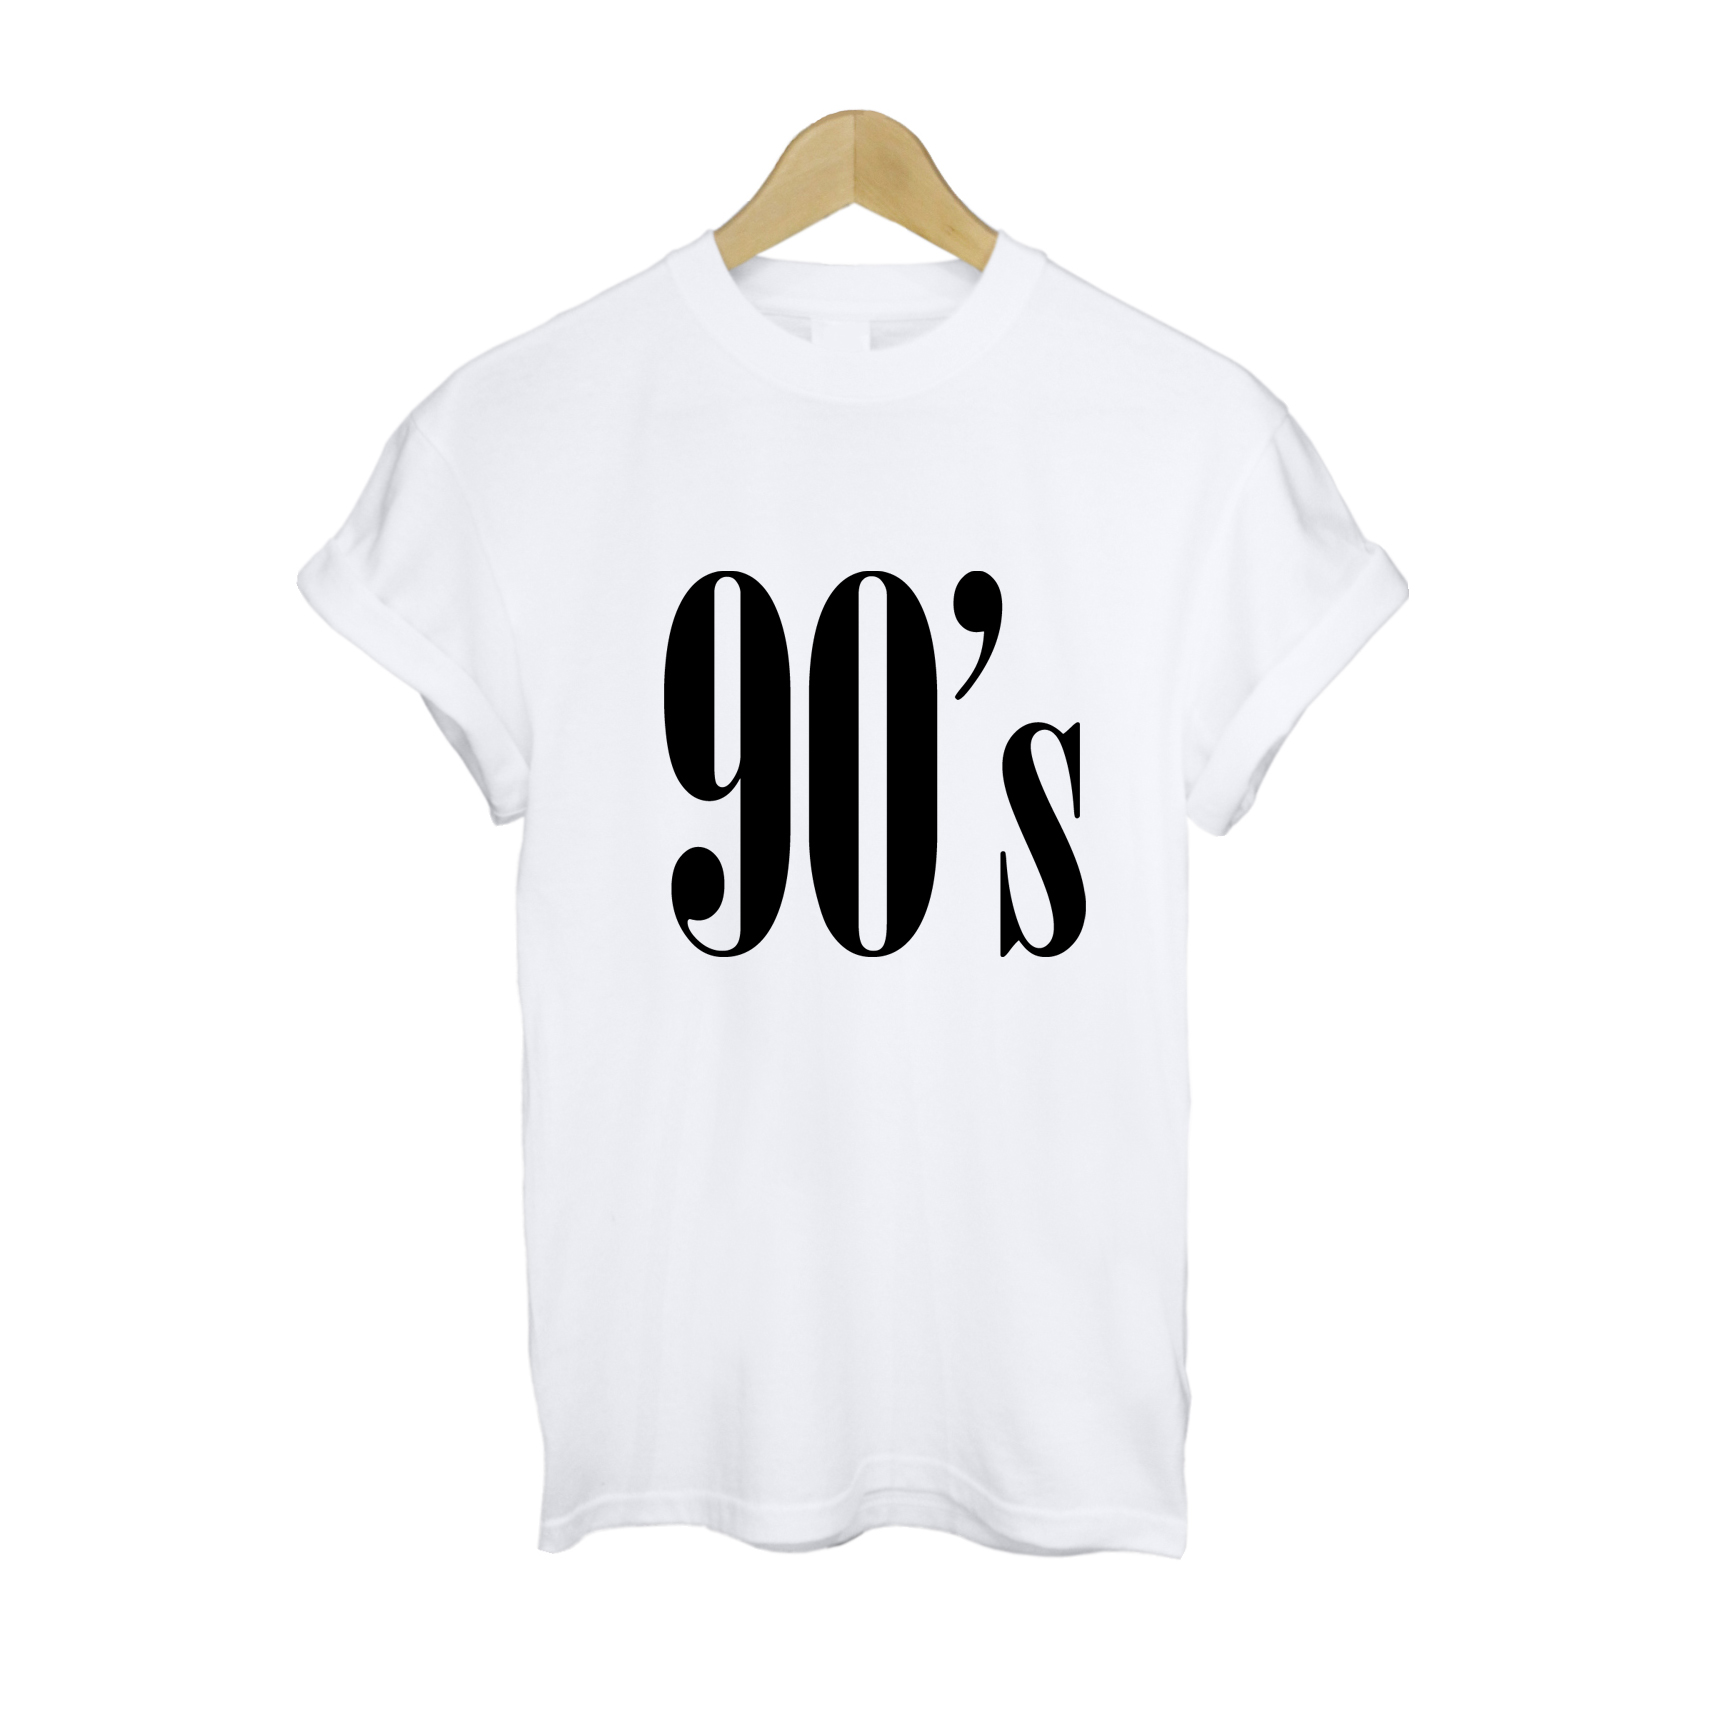 90's Baggy Style T Shirt - White £11   Free UK Delivery   10% OFF